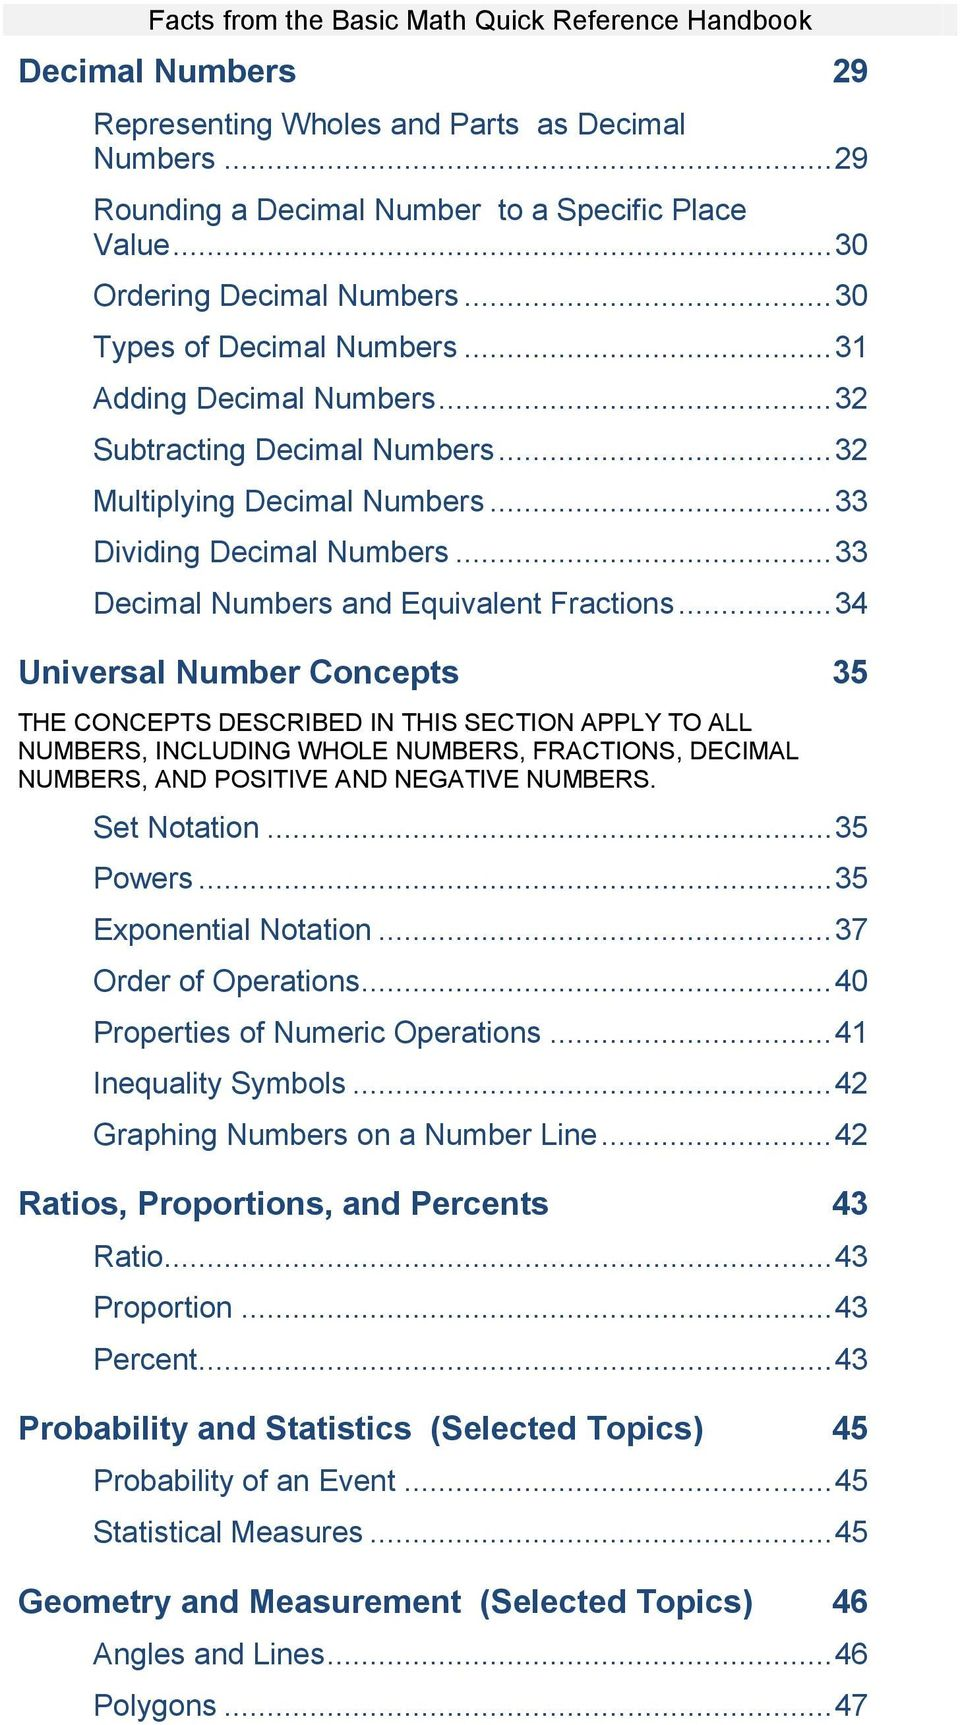 .. 34 Universal Number Concepts 35 THE CONCEPTS DESCRIBED IN THIS SECTION APPLY TO ALL NUMBERS, INCLUDING WHOLE NUMBERS, FRACTIONS, DECIMAL NUMBERS, AND POSITIVE AND NEGATIVE NUMBERS. Set Notation.